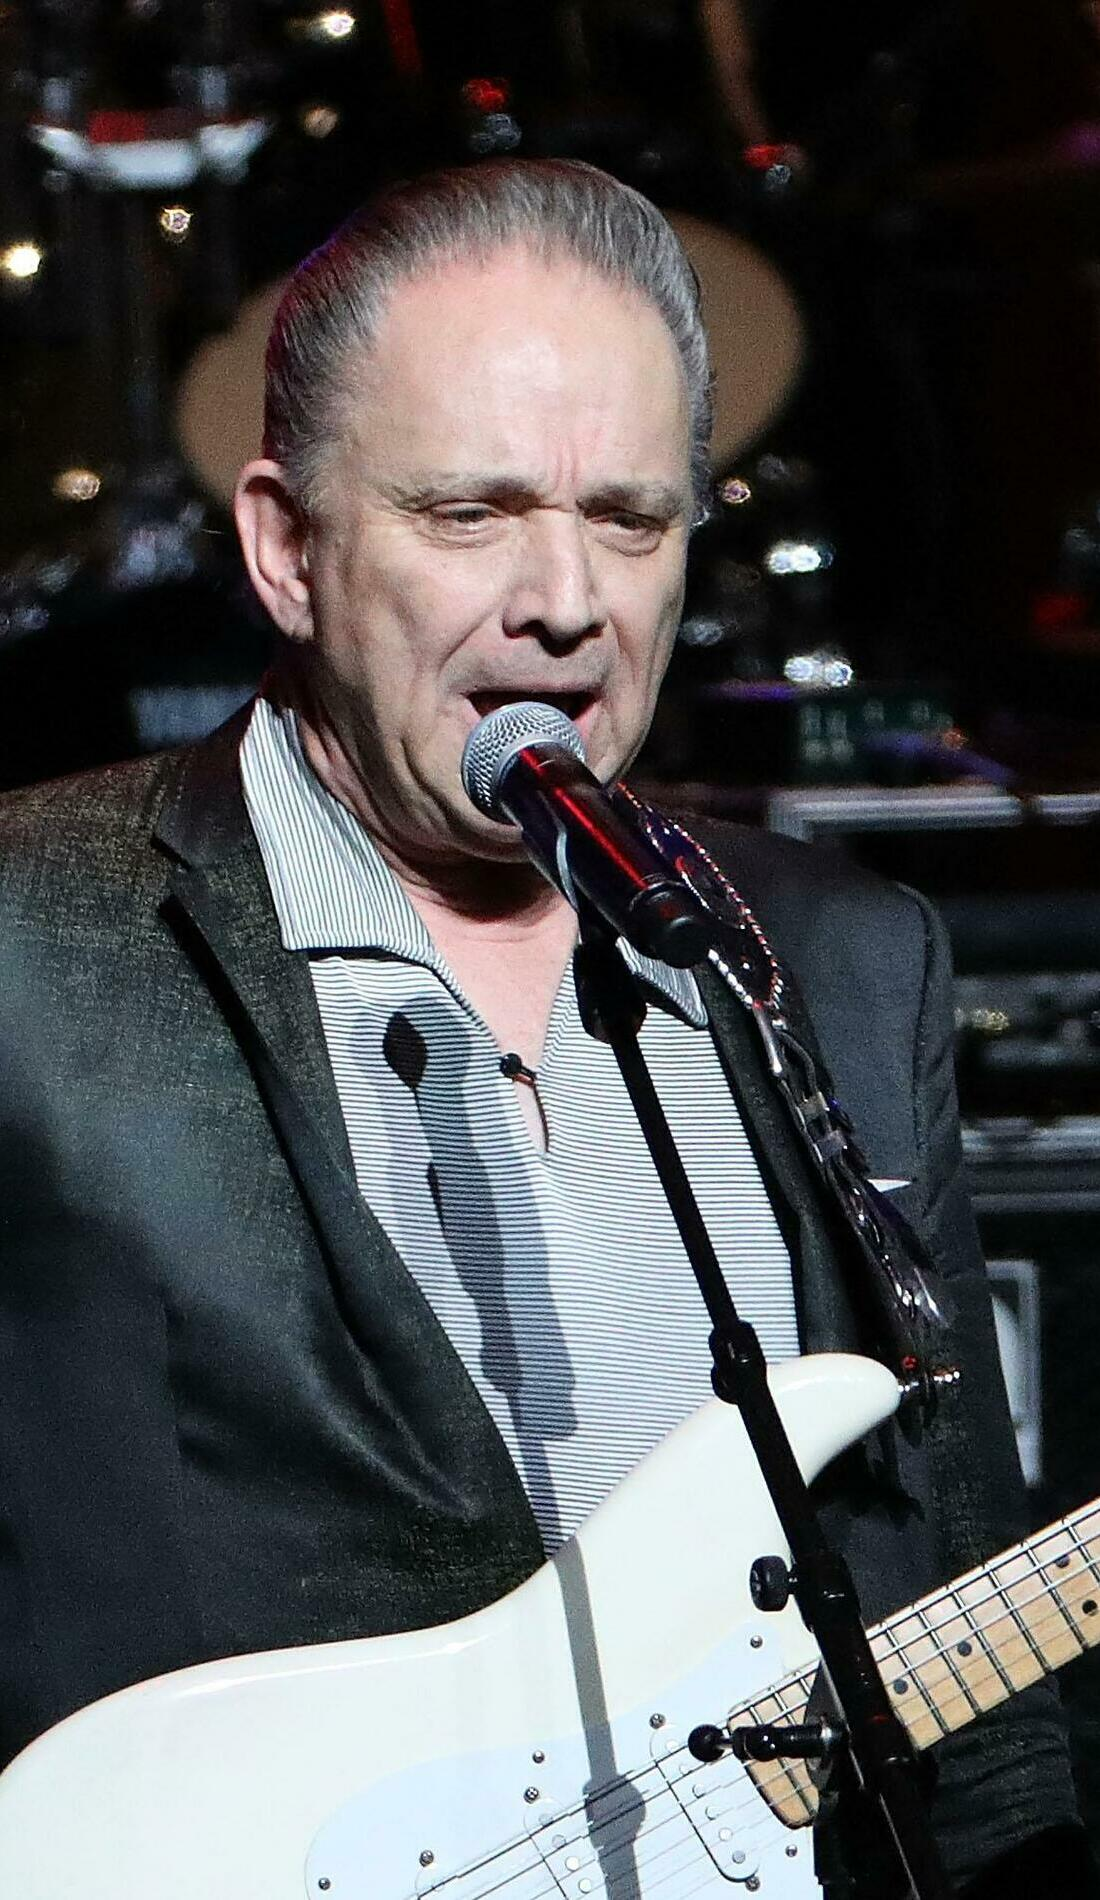 A Jimmie Vaughan live event